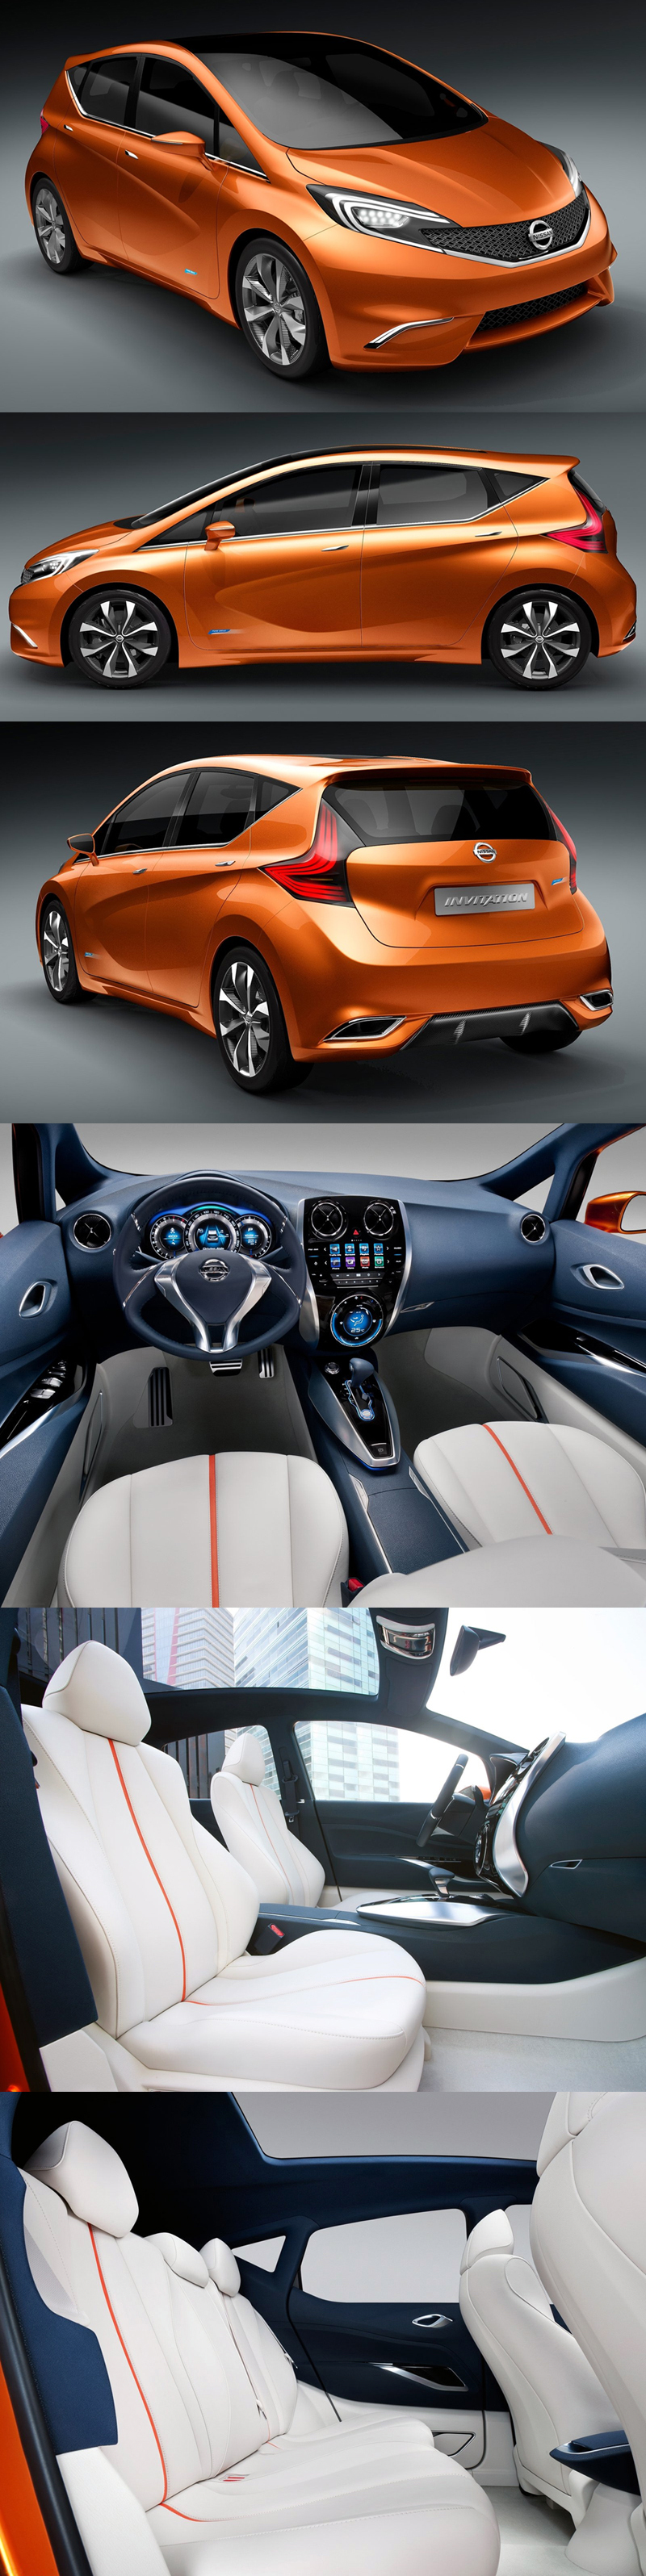 2012_Nissan_Invitation_Concept_Car